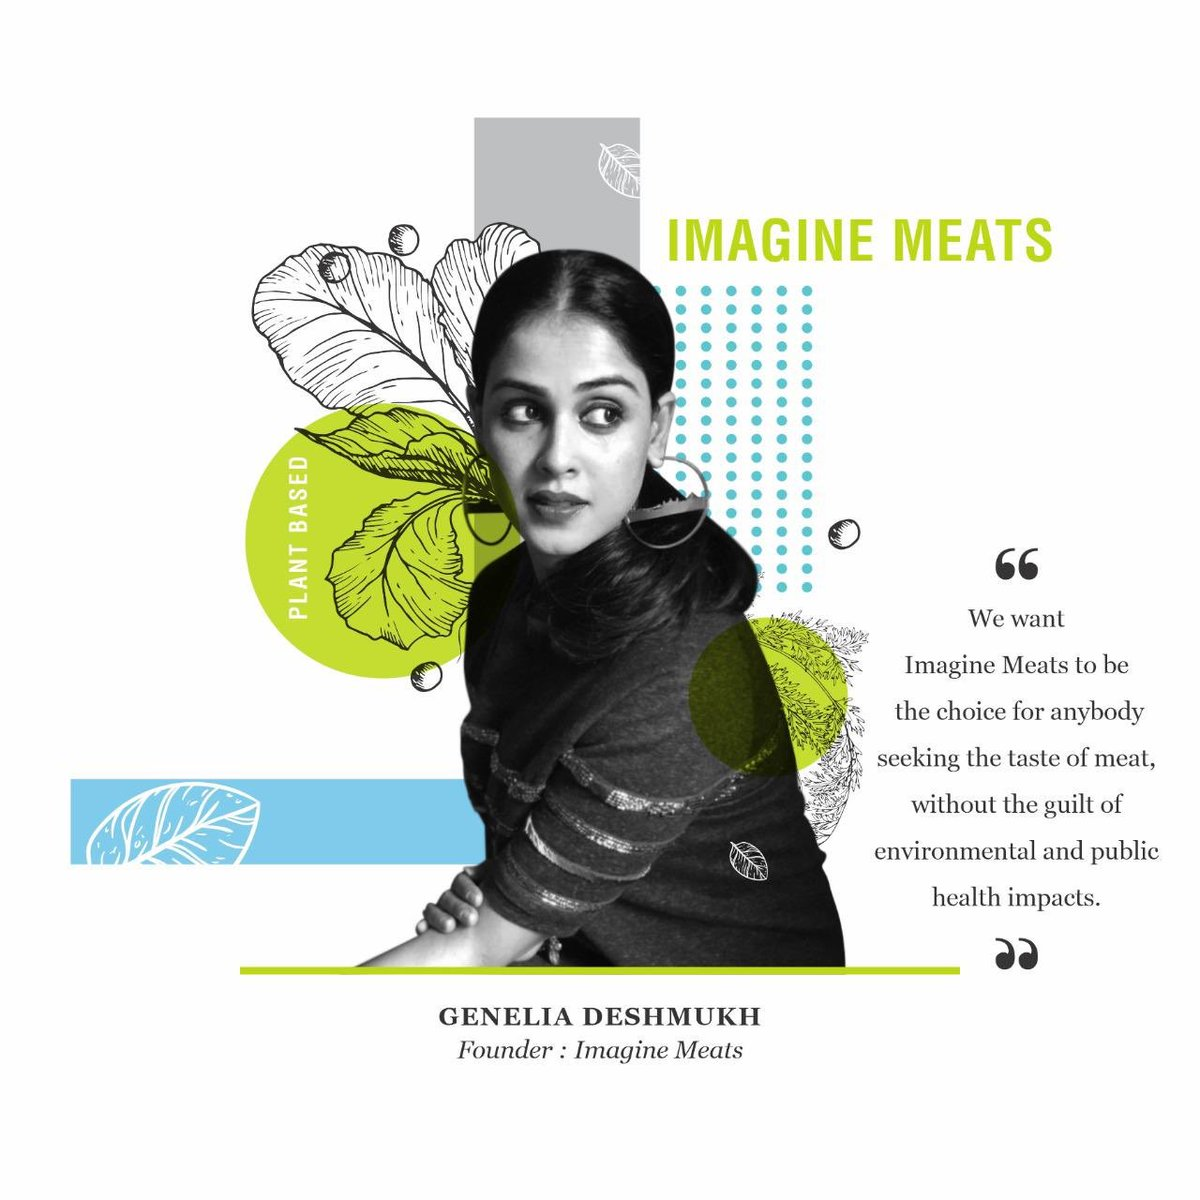 We want @imaginemeats to be a choice for anybody seeking the taste of meats without the guilt of environment and public health impacts. - @geneliad Founder / Imagine Meats